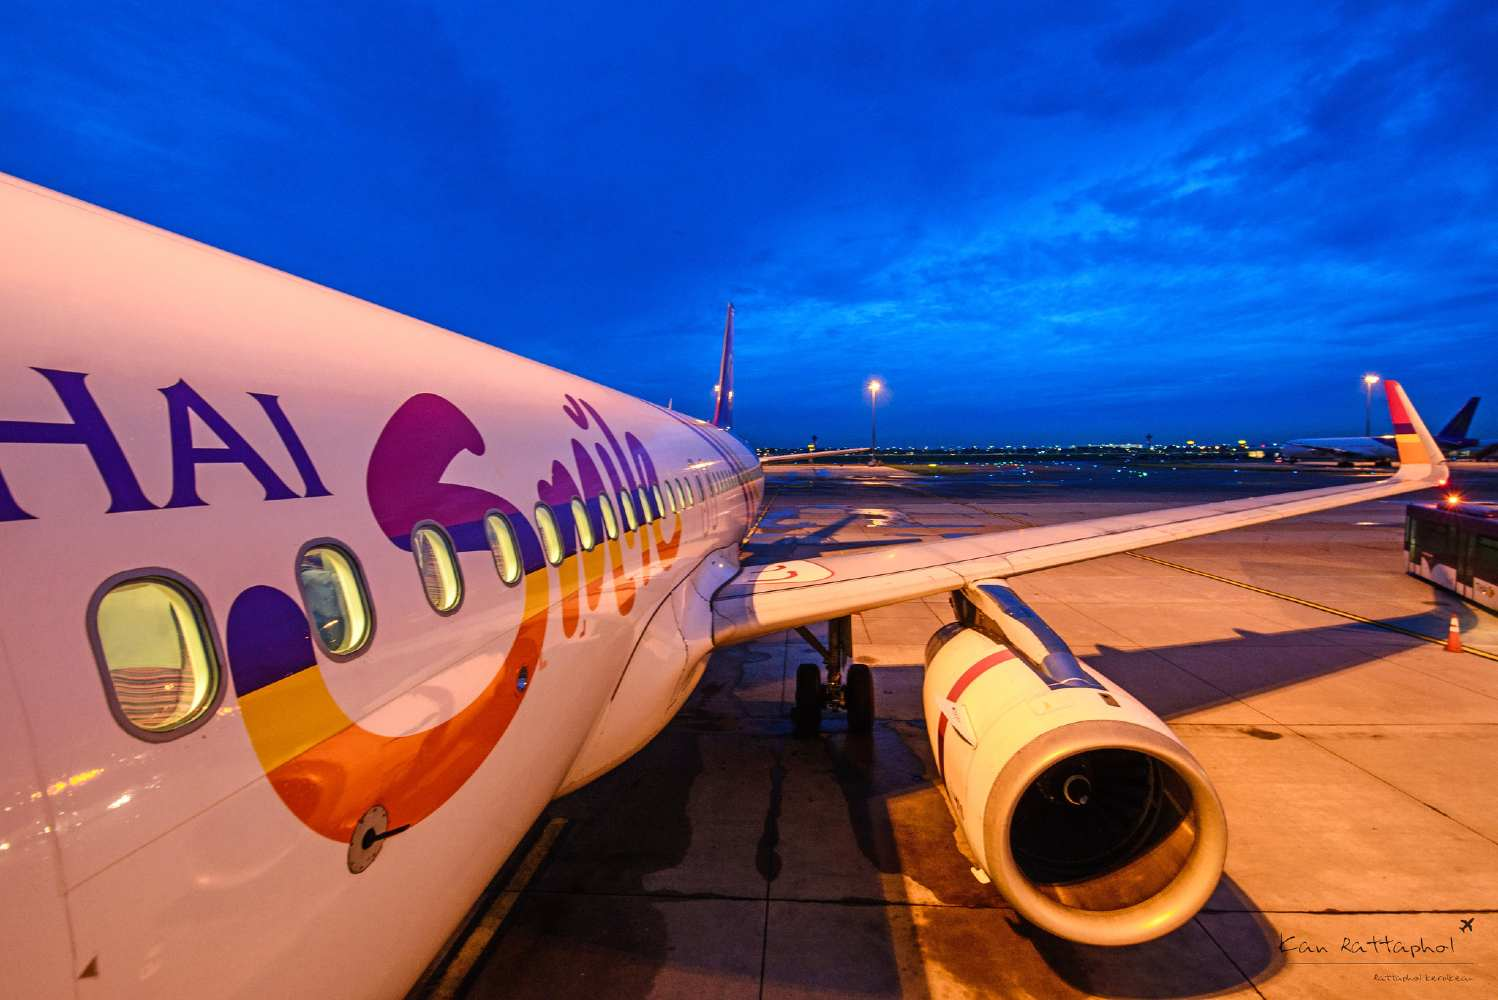 A Thai Smile Airlines plane at the airport